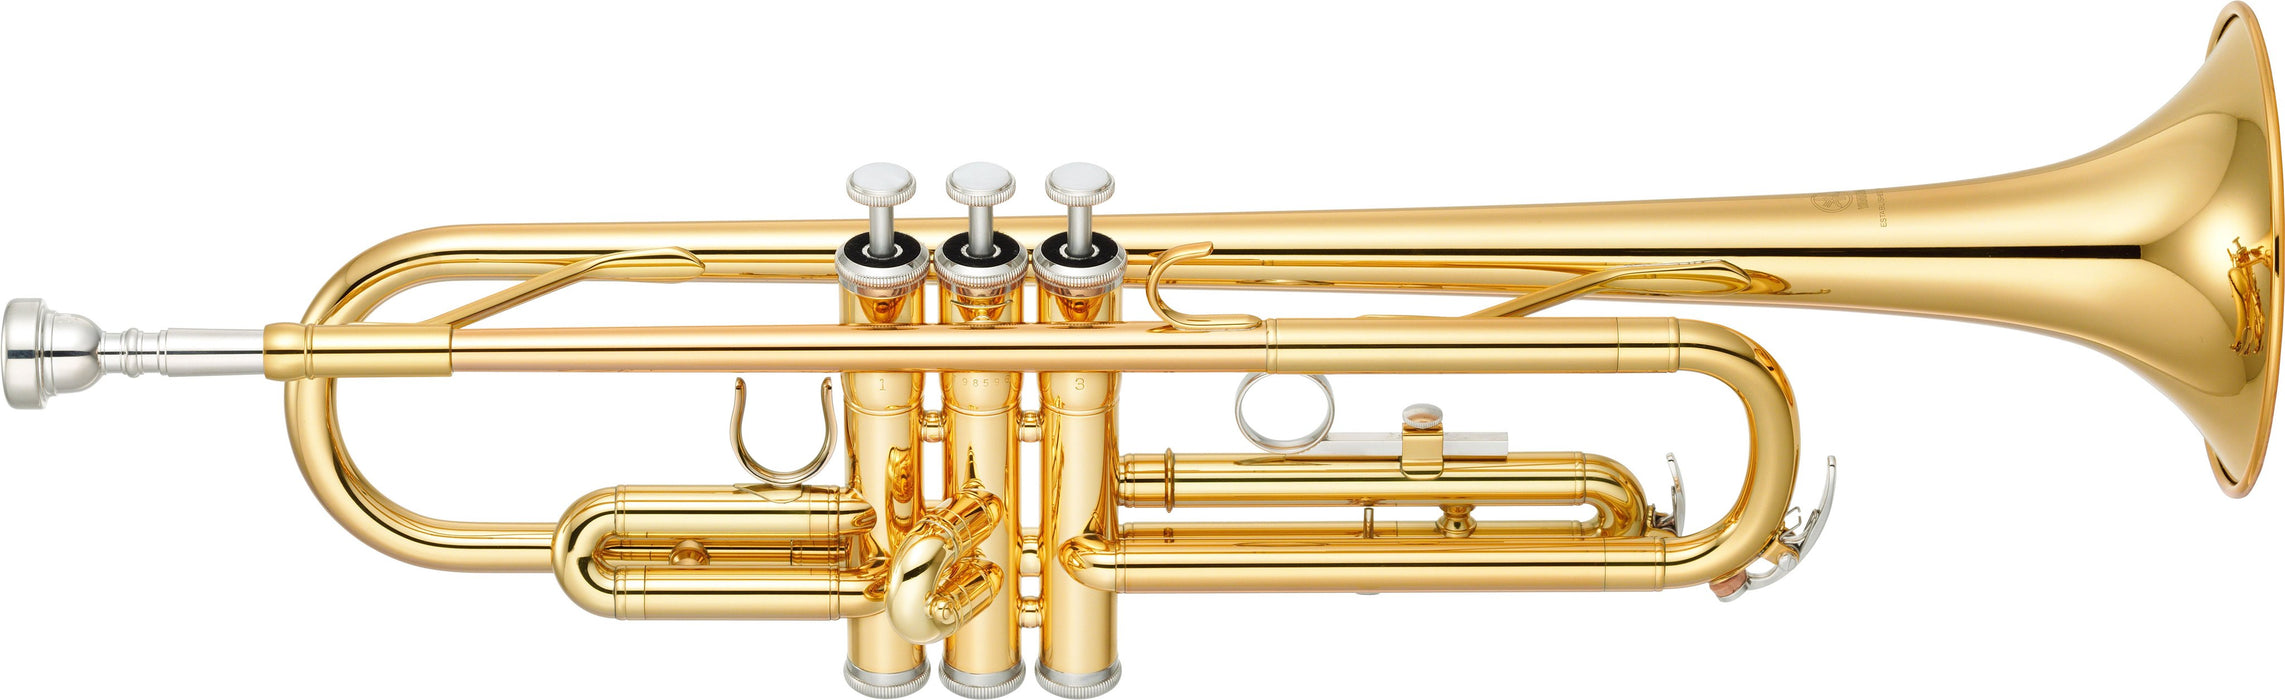 Yamaha YTR-2330 Student B♭ Trumpet - Gold Lacquer